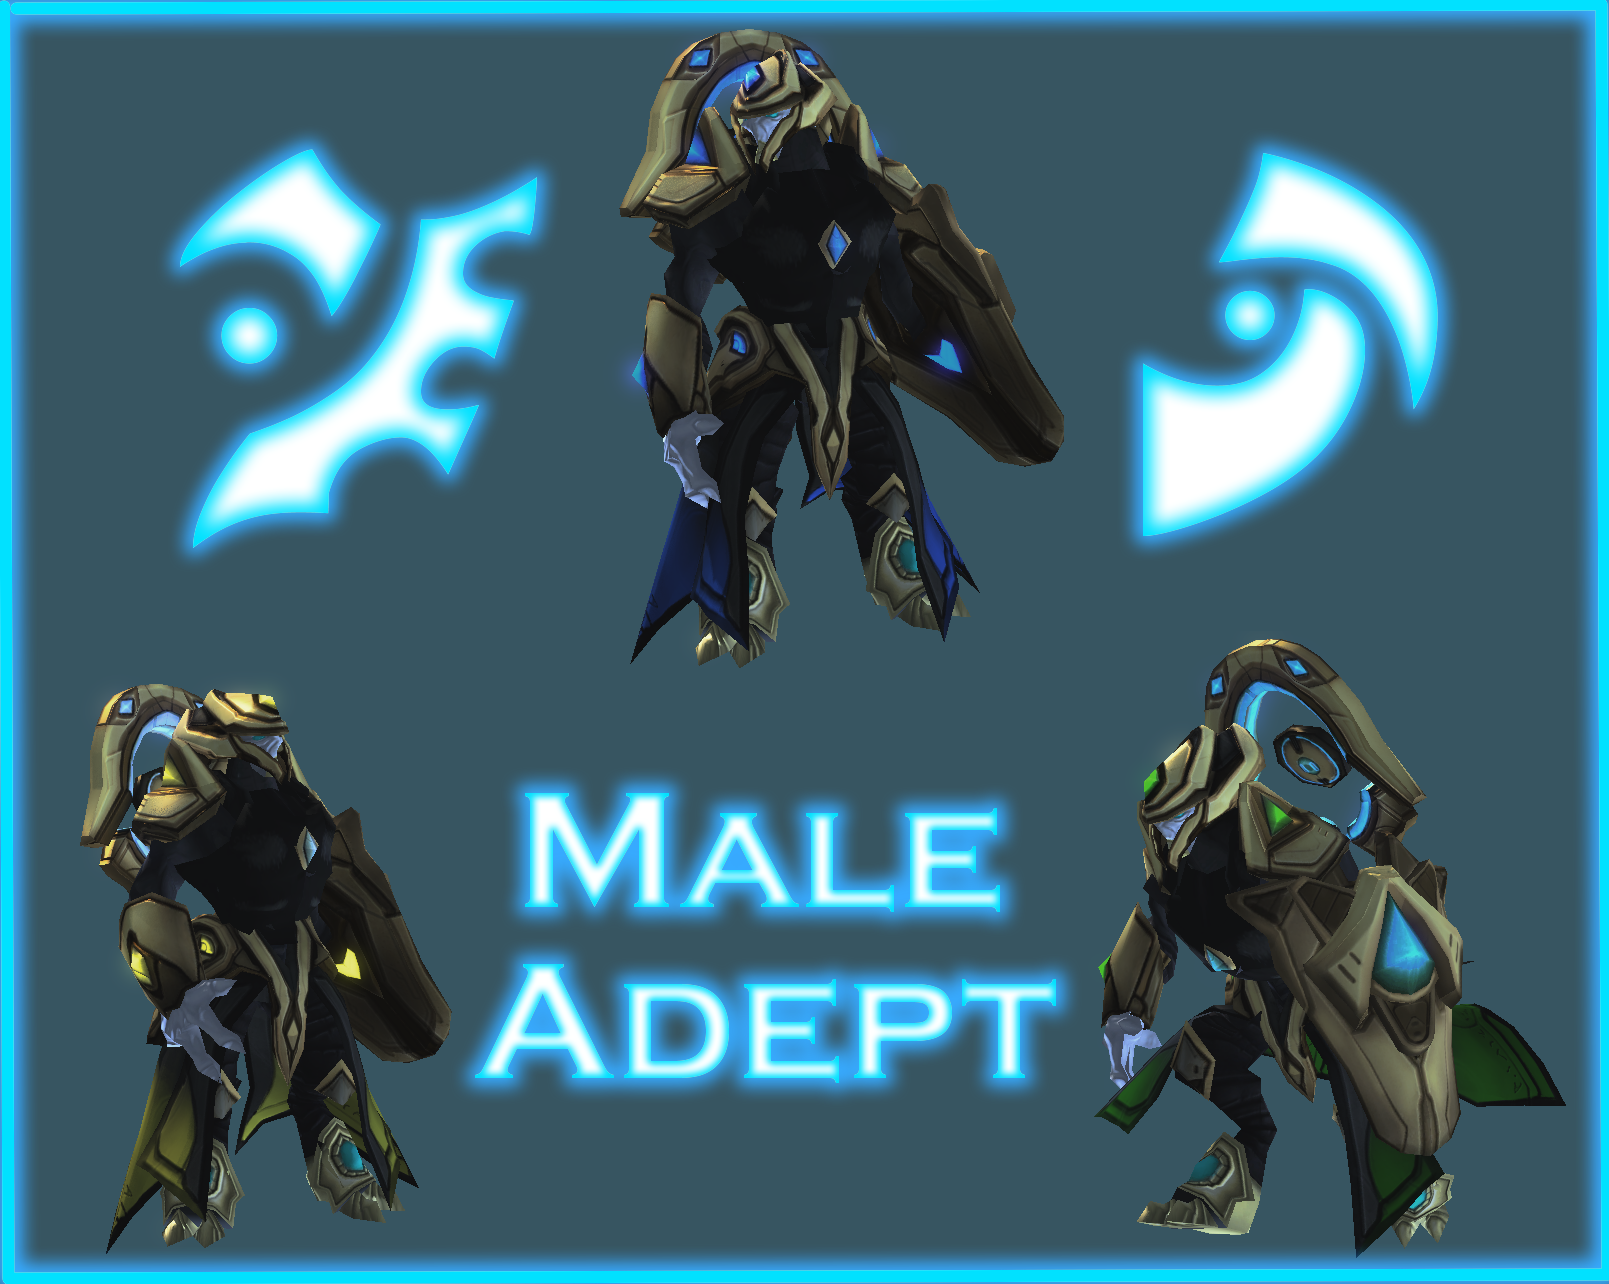 Adept Male